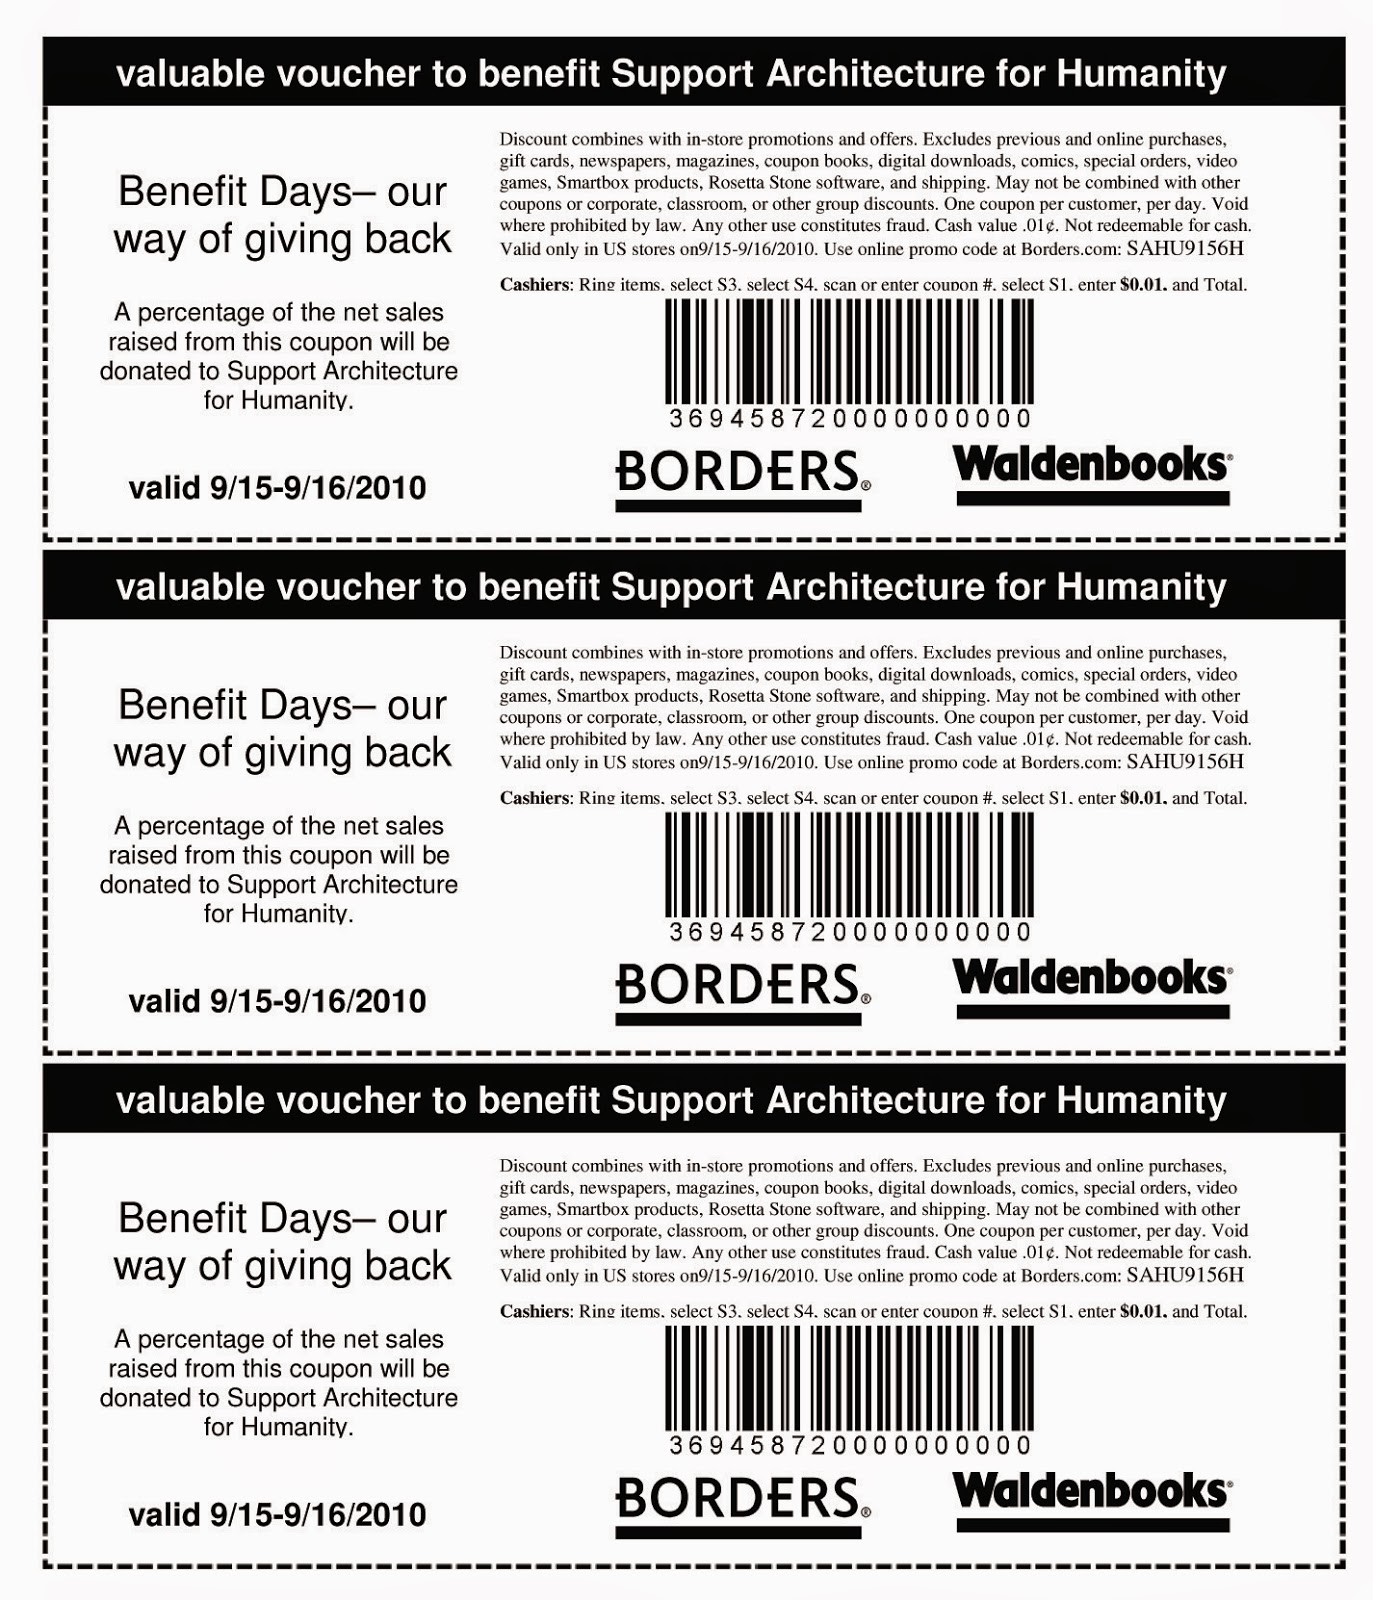 Haircut coupons toledo ohio - Find A Dave Buster S Location And View Local Events And Find A Dave Buster S Location Click On One Of The Pins Above Or Locations Below To Get More